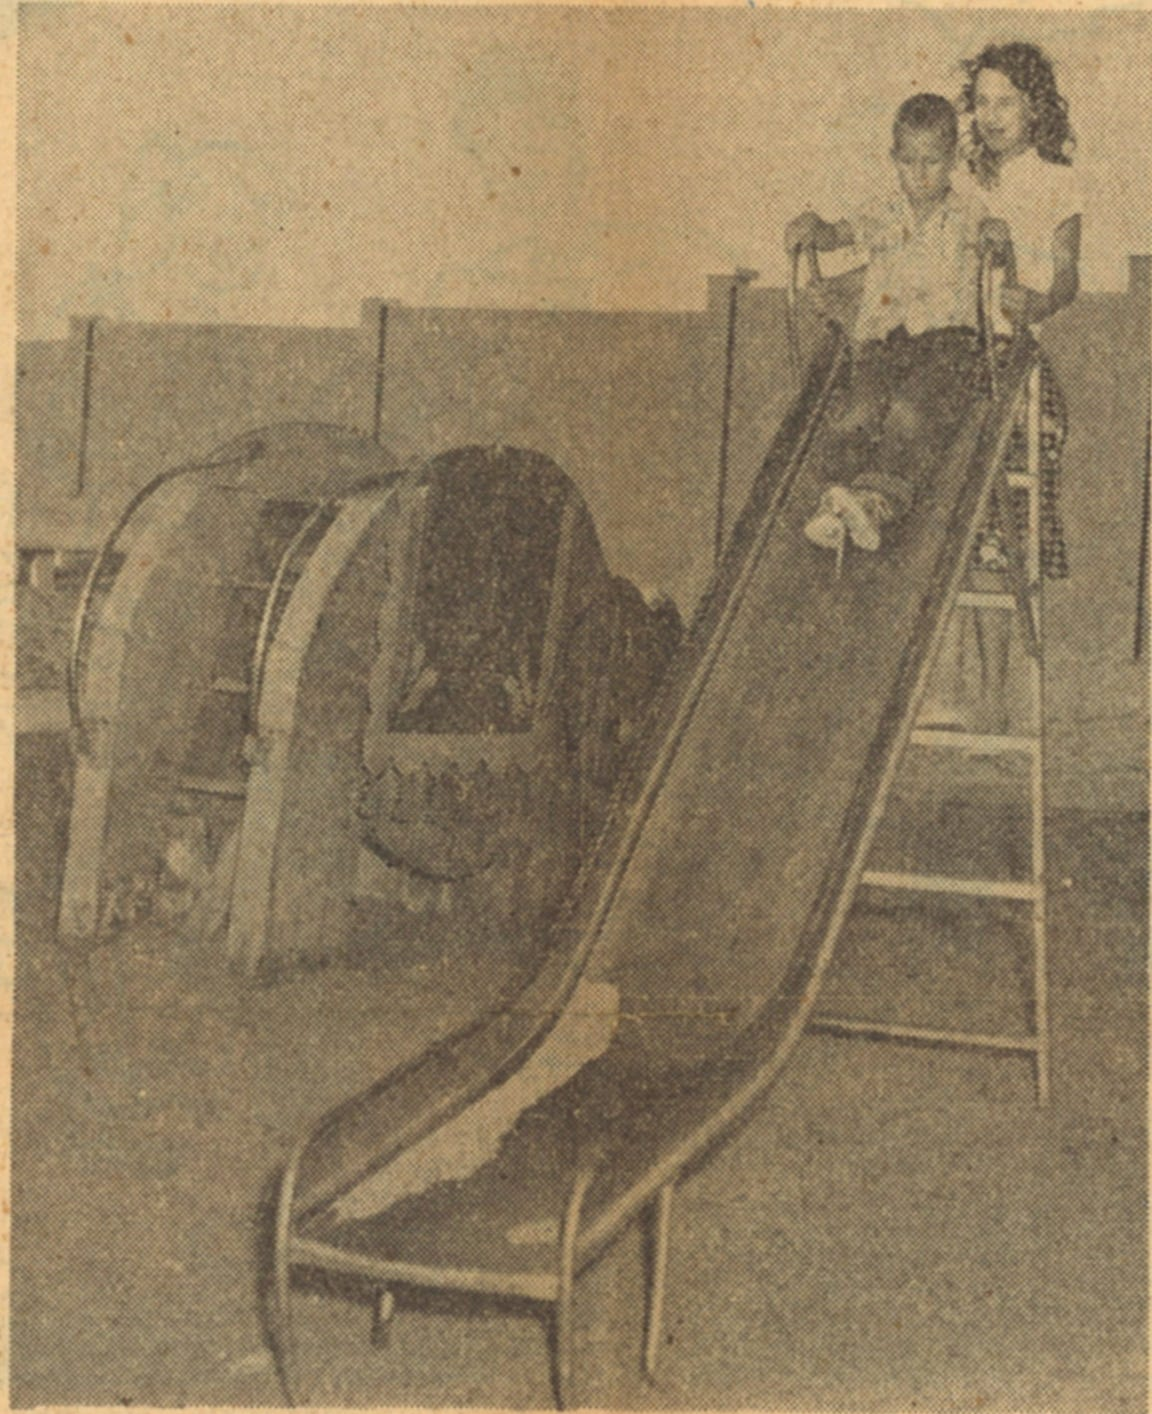 Frances Turner, 14, and her brother Tommy, 7, enjoy a slide at the Corpus Christi Drive-In Theatre before the movie starts. Playgrounds were common at drive-in theaters.